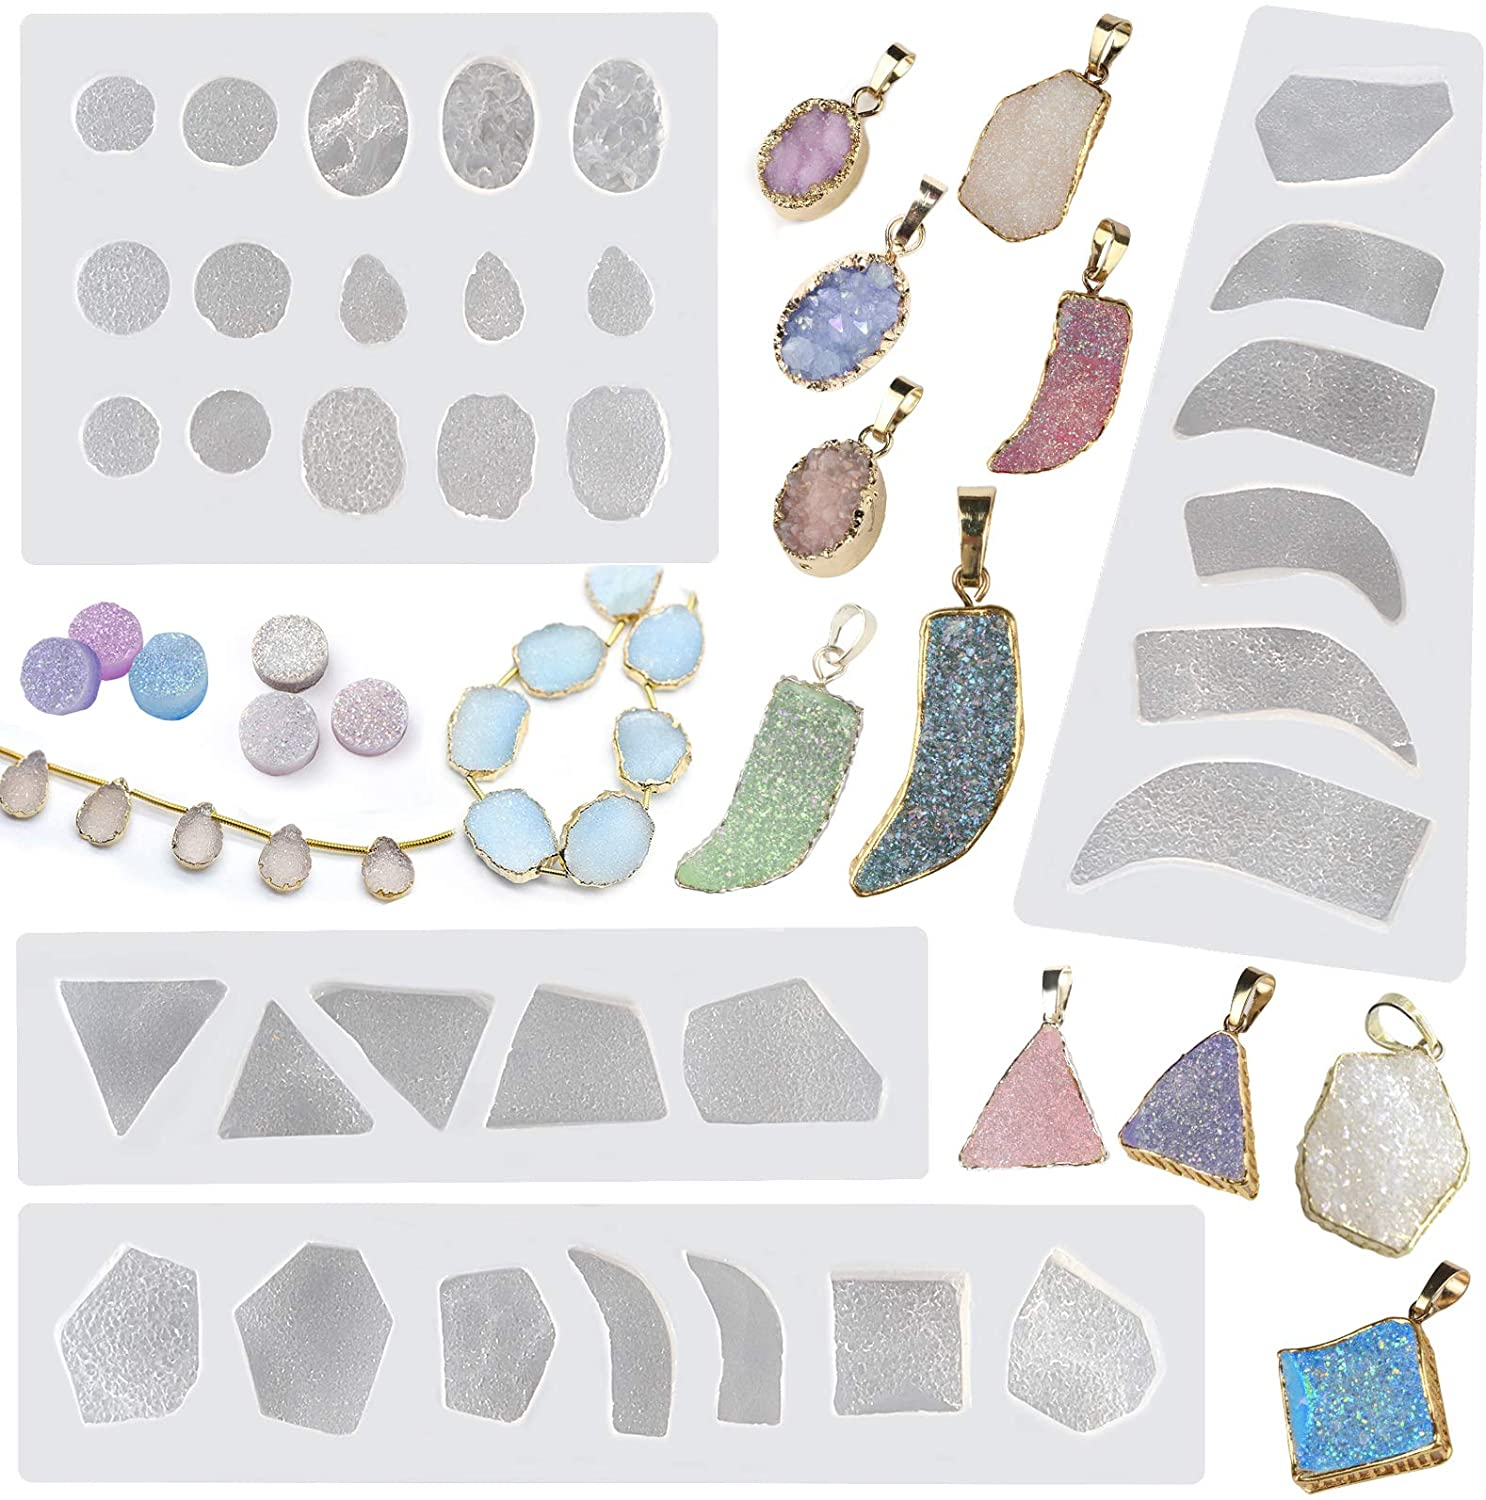 Resin Molds for Jewelry Crystal Glue Mold Set Silicon Mold Resin Mold Kit Premium Silicone Molds for Resin Casting Epoxy Molds Resin Jewelry Making Kit Keychain Molds Earring Molds Craft Kit